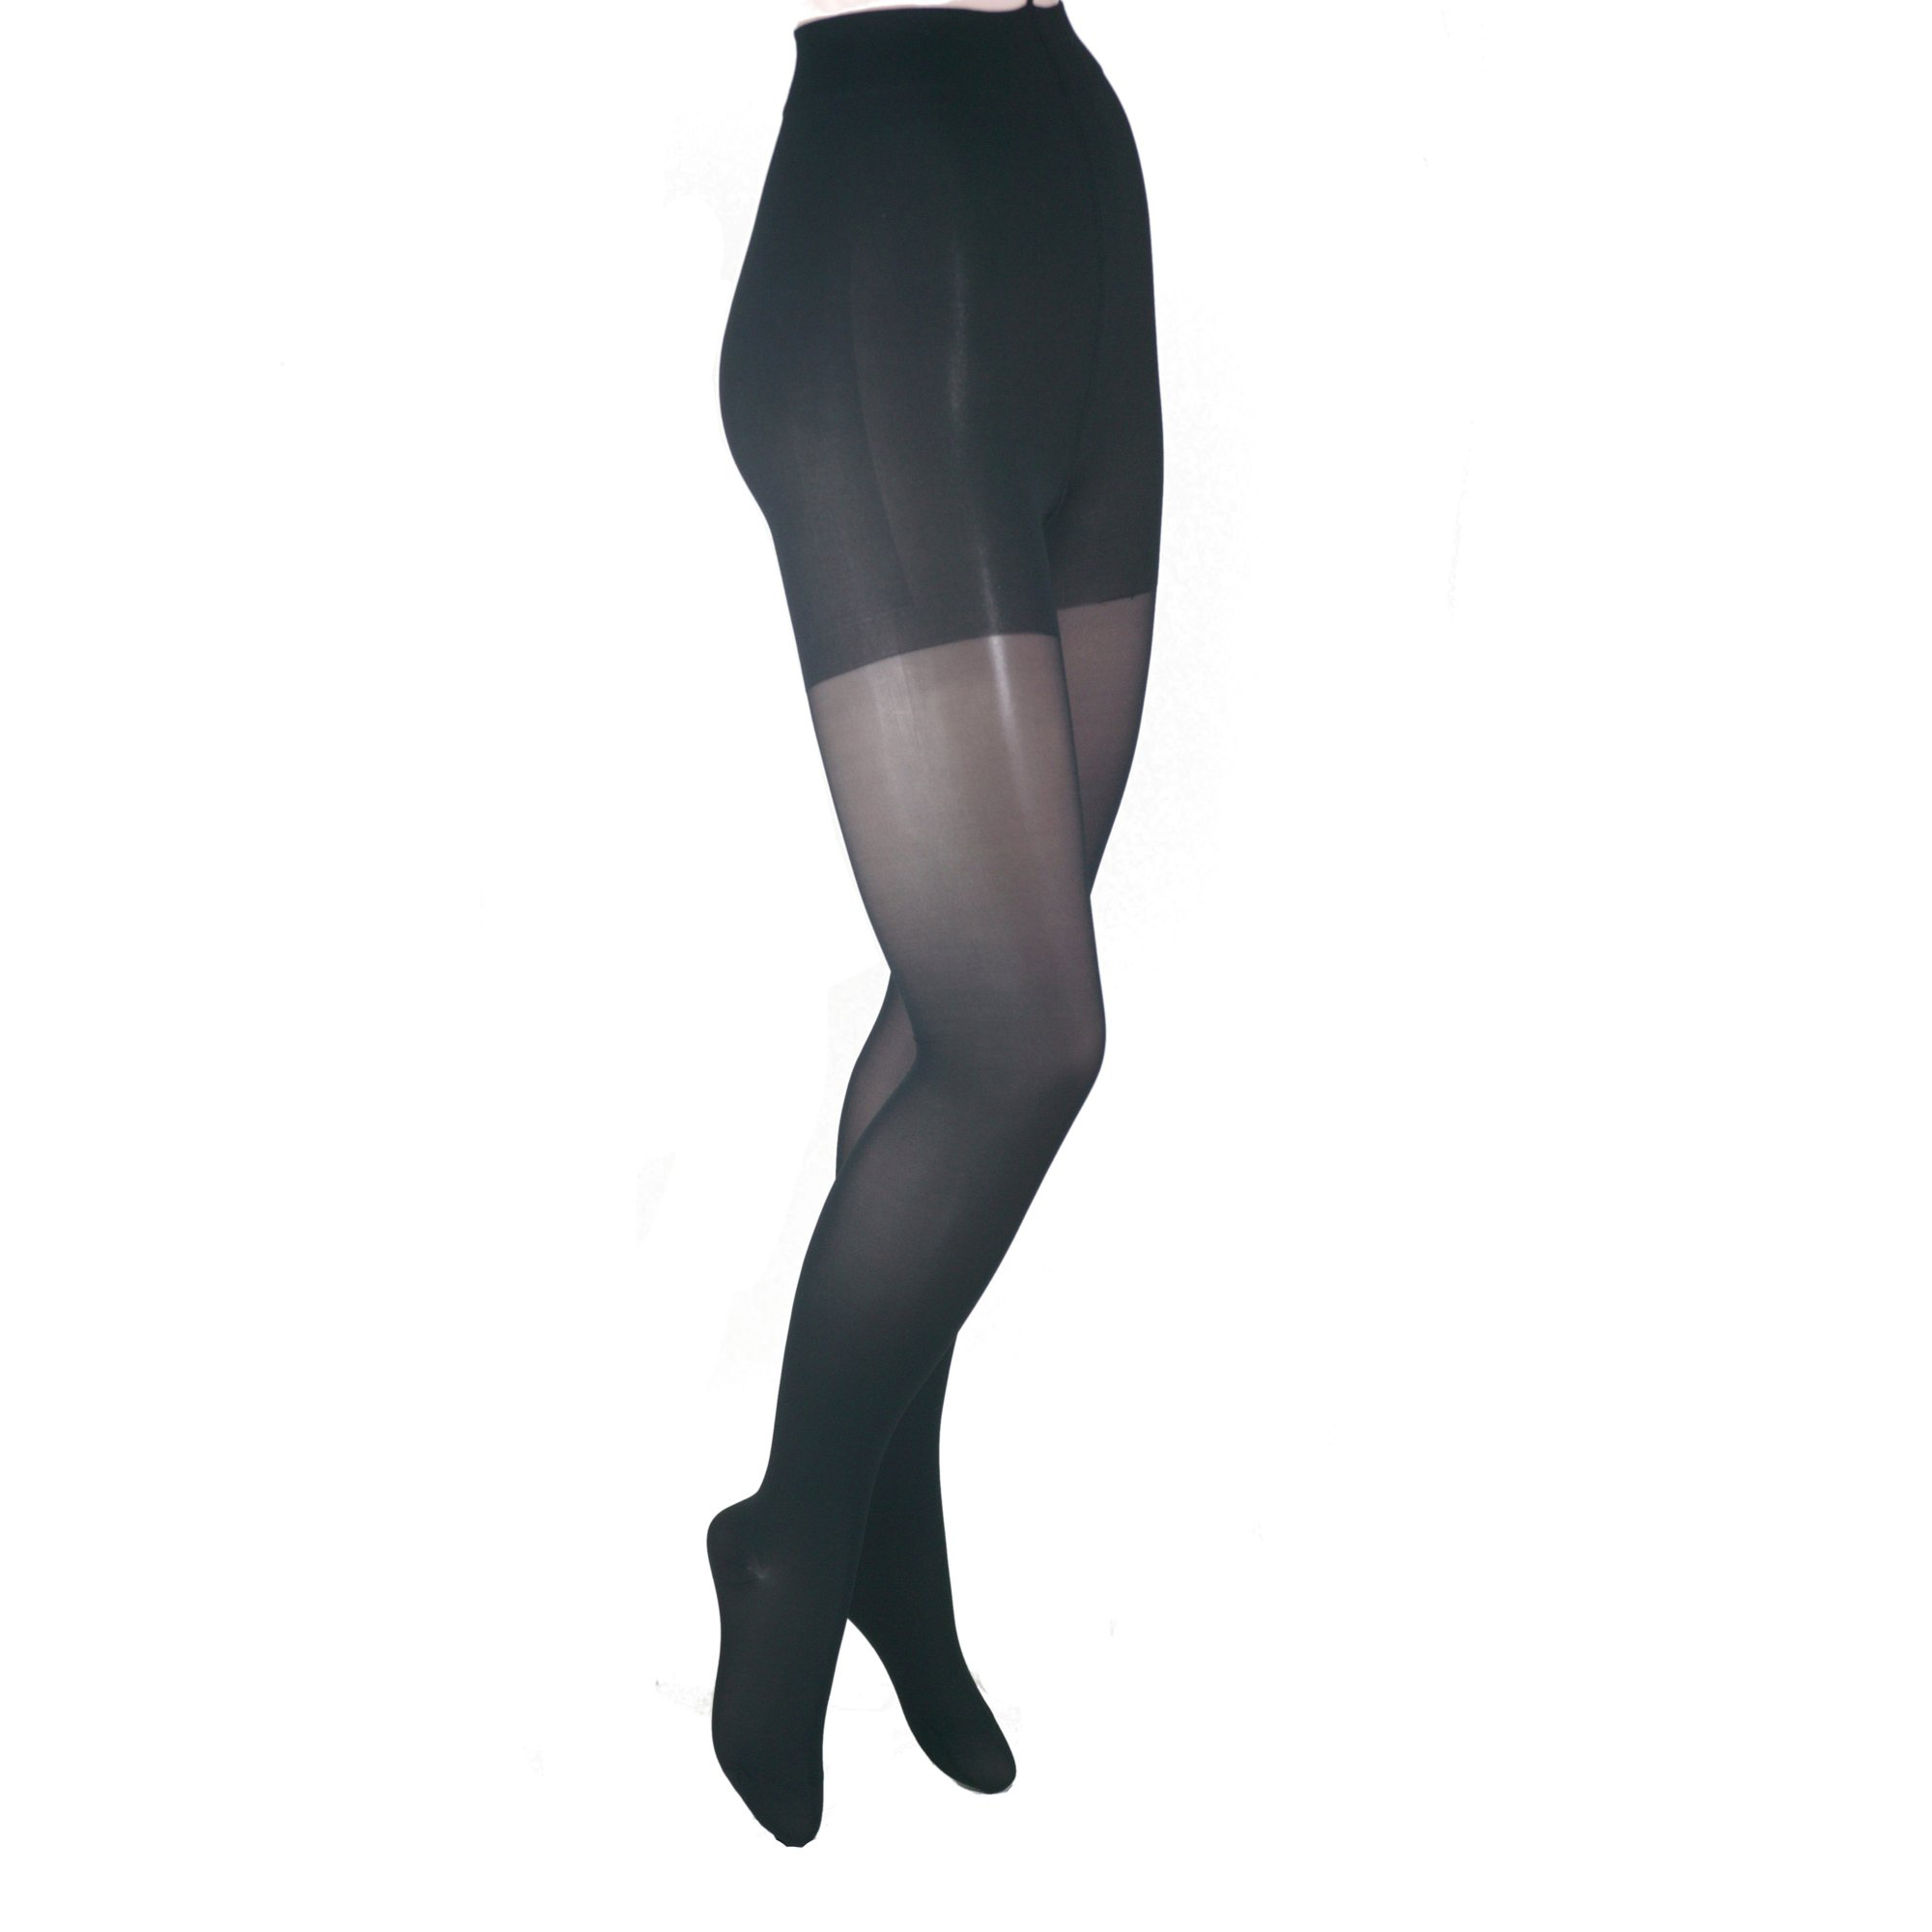 Gabrialla Sheer Pantyhose Compression (23-30 mmHg), Black, Queen plus, Count